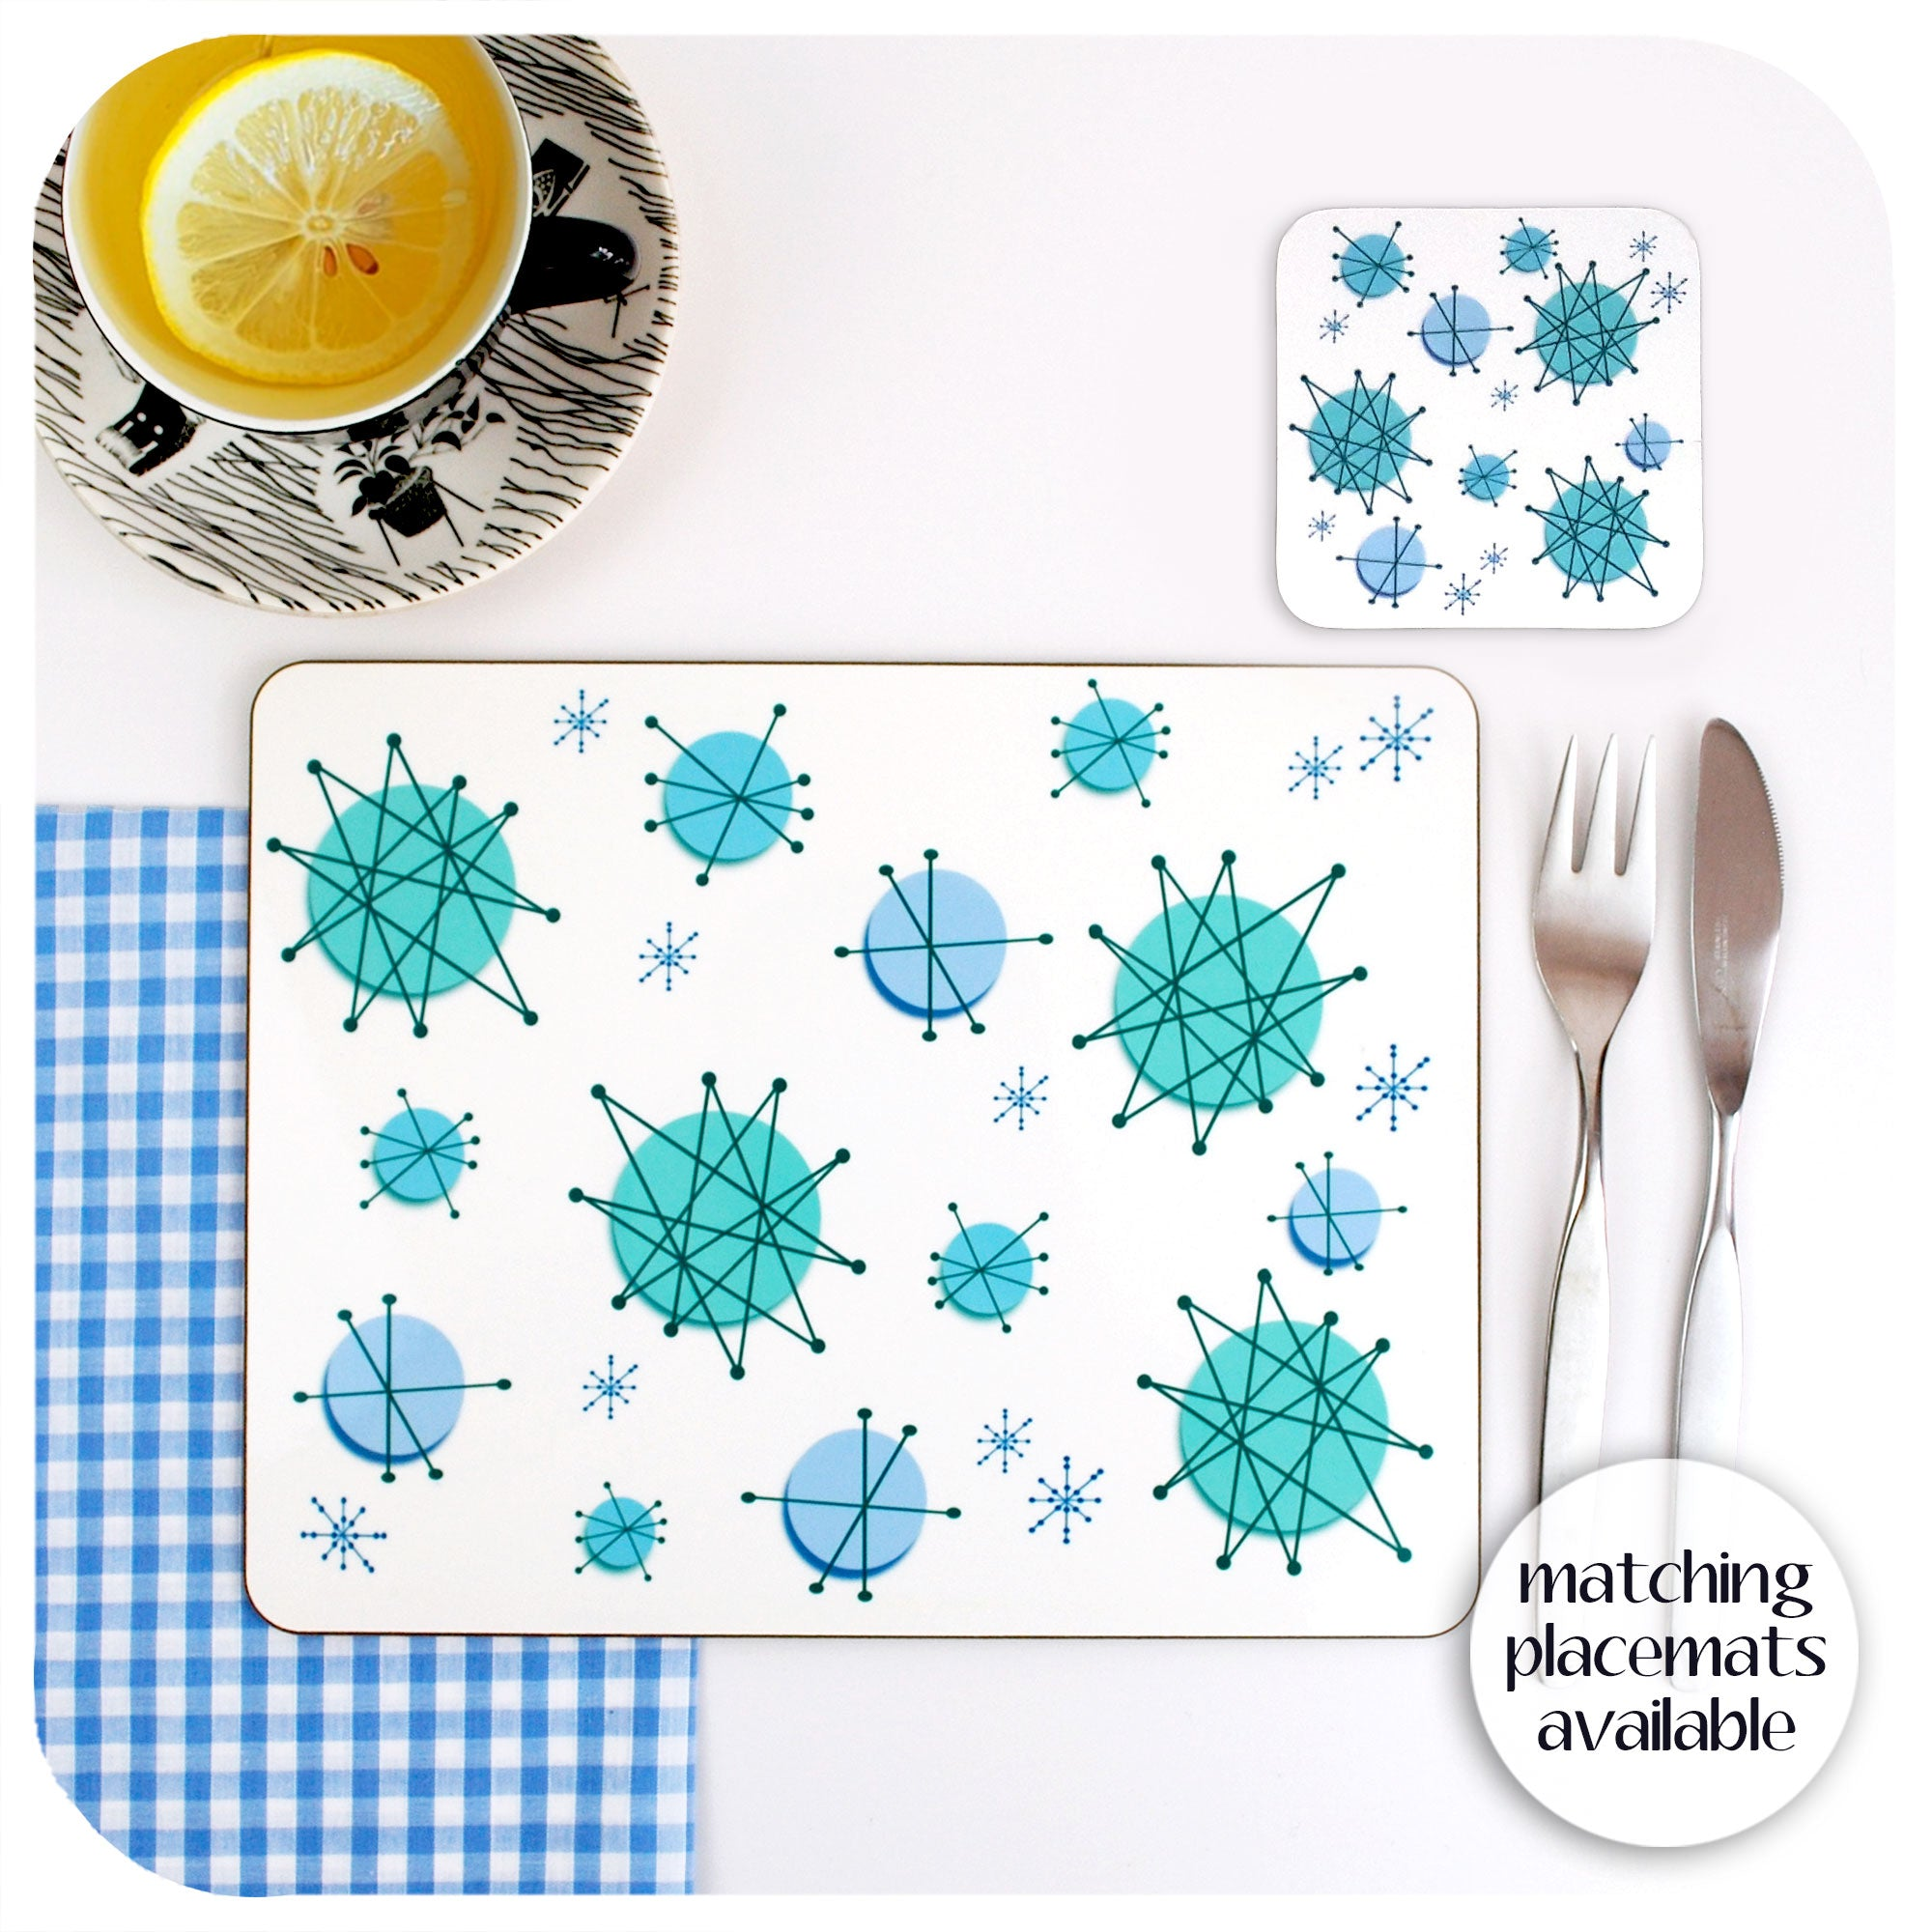 Matching Atomic Starburst Coasters available | The Inkabilly Emporium